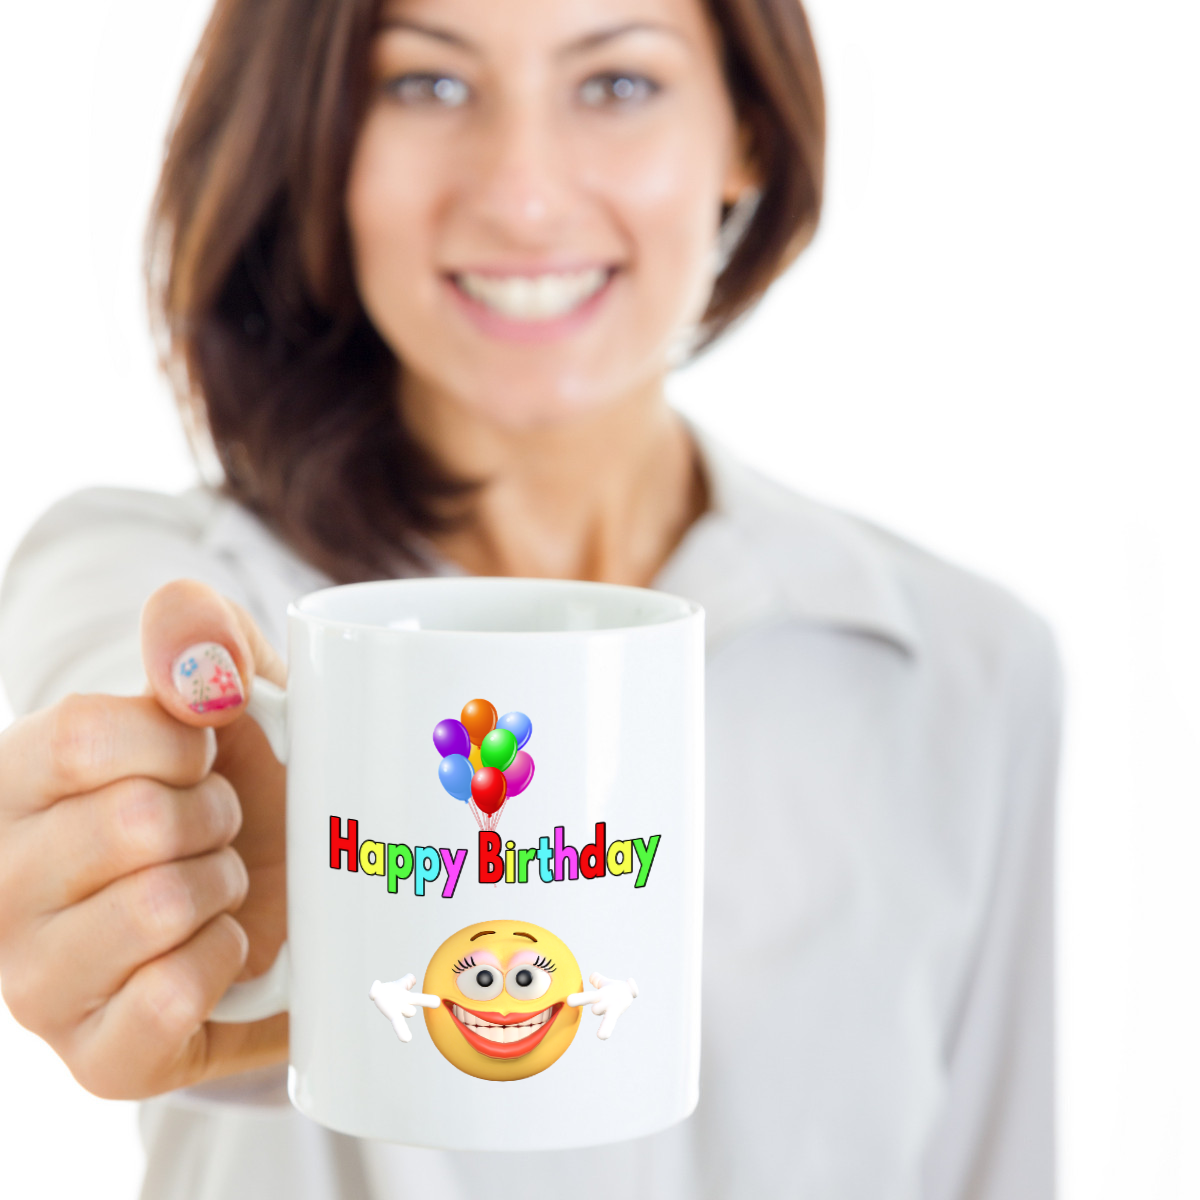 Birthday Funny Gift For Mom Mother Her Women Friend Girlfriend Customized Mug